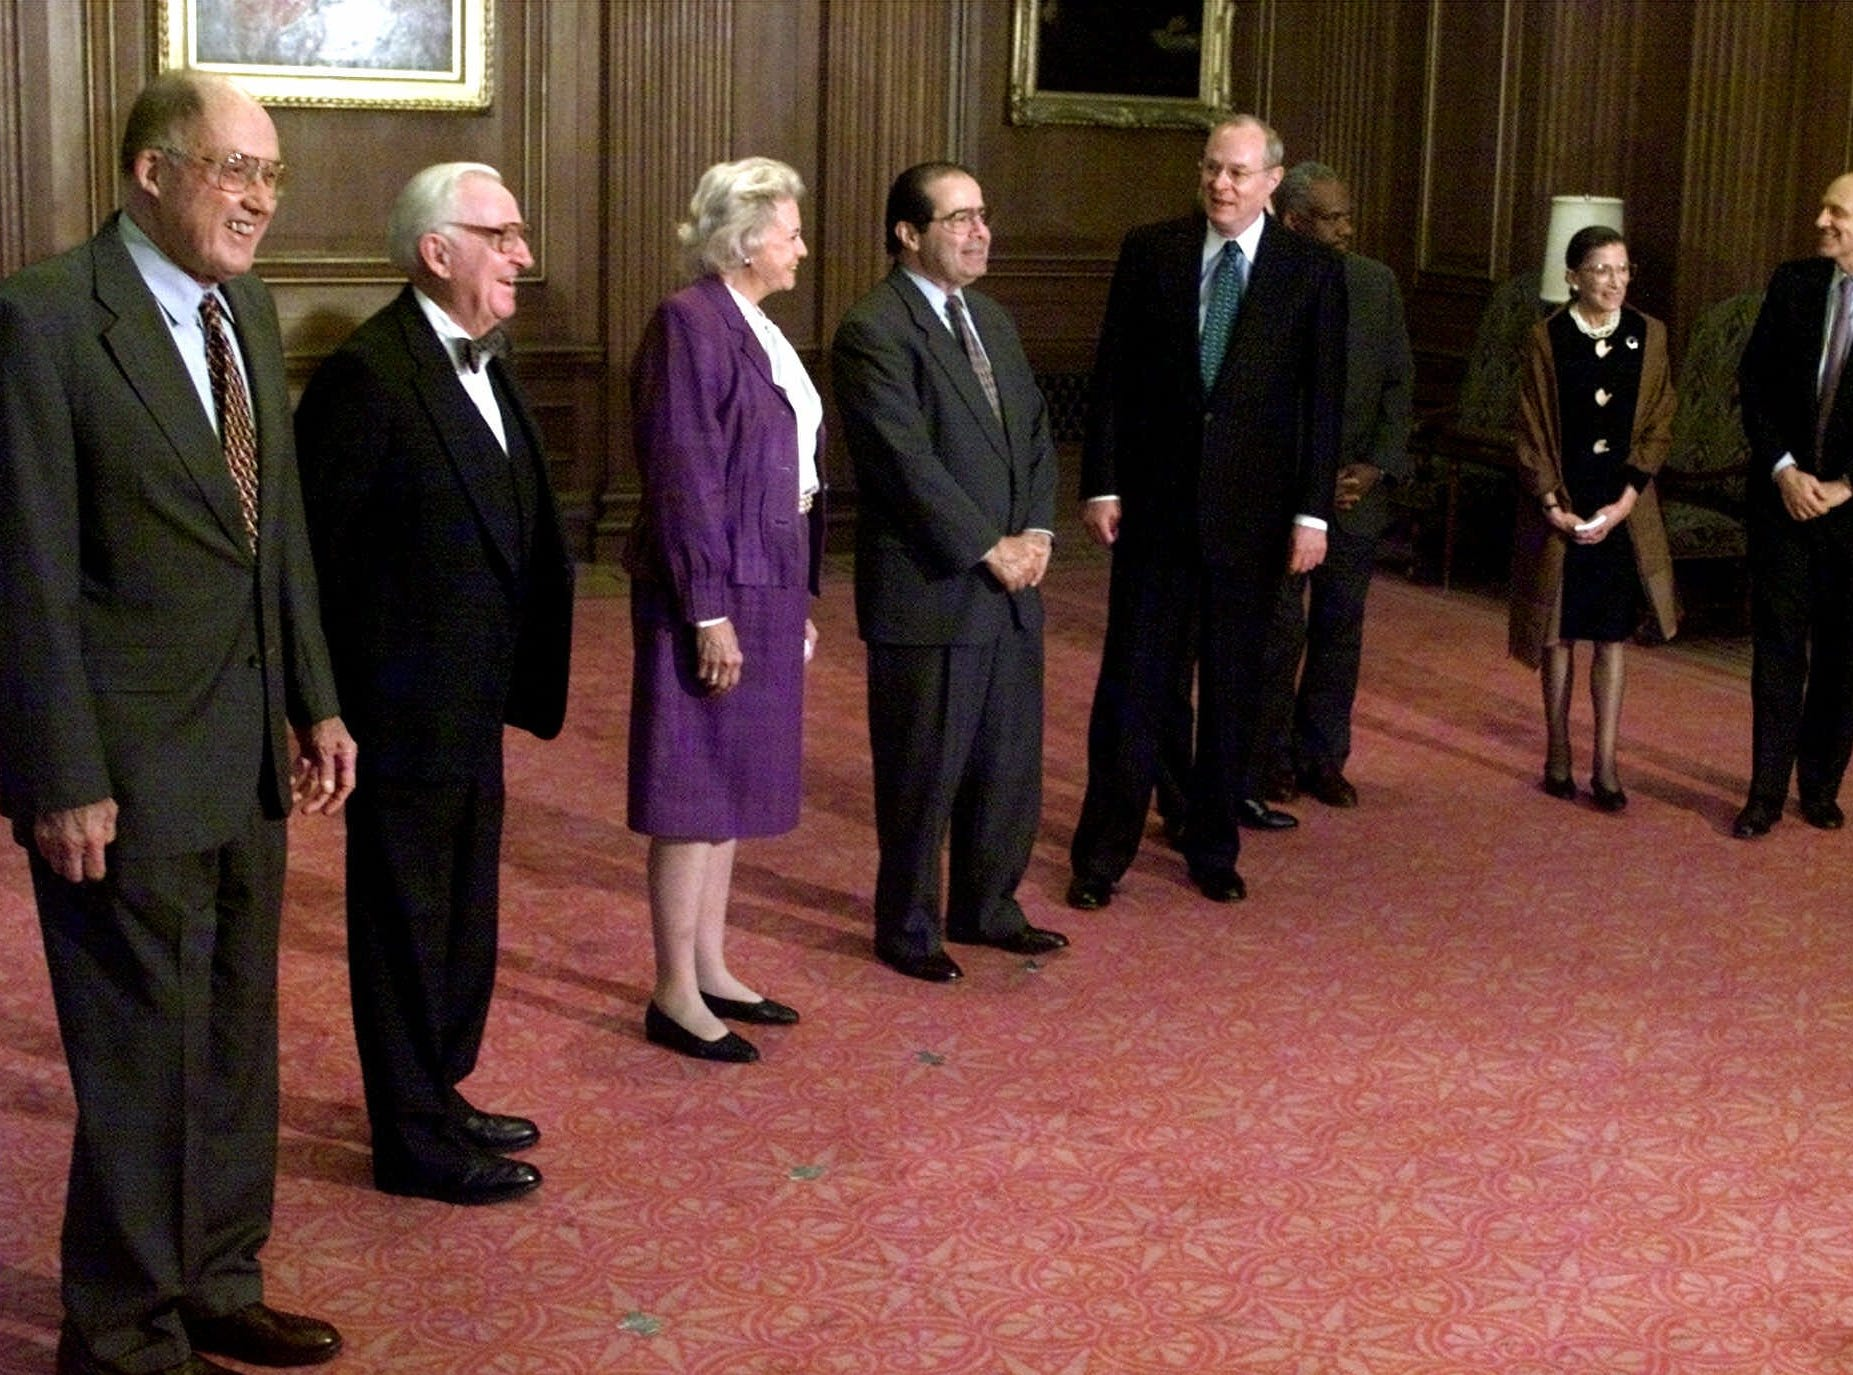 U.S. Supreme Court justices gather to meet with representatives of the Court of Justice of the European Communities at the Supreme Court in Washington, Tuesday April 18, 2000. From left, Chief Justice of the Supreme Court William Rehnquist and Justices John Paul Stevens, Sandra Day O'Connor, Antonin Scalia, Anthony Kennedy, David Souter (hidden), Clarence Thomas (partially hidden), Ruth Bader Ginsburg and Stephen Breyer.